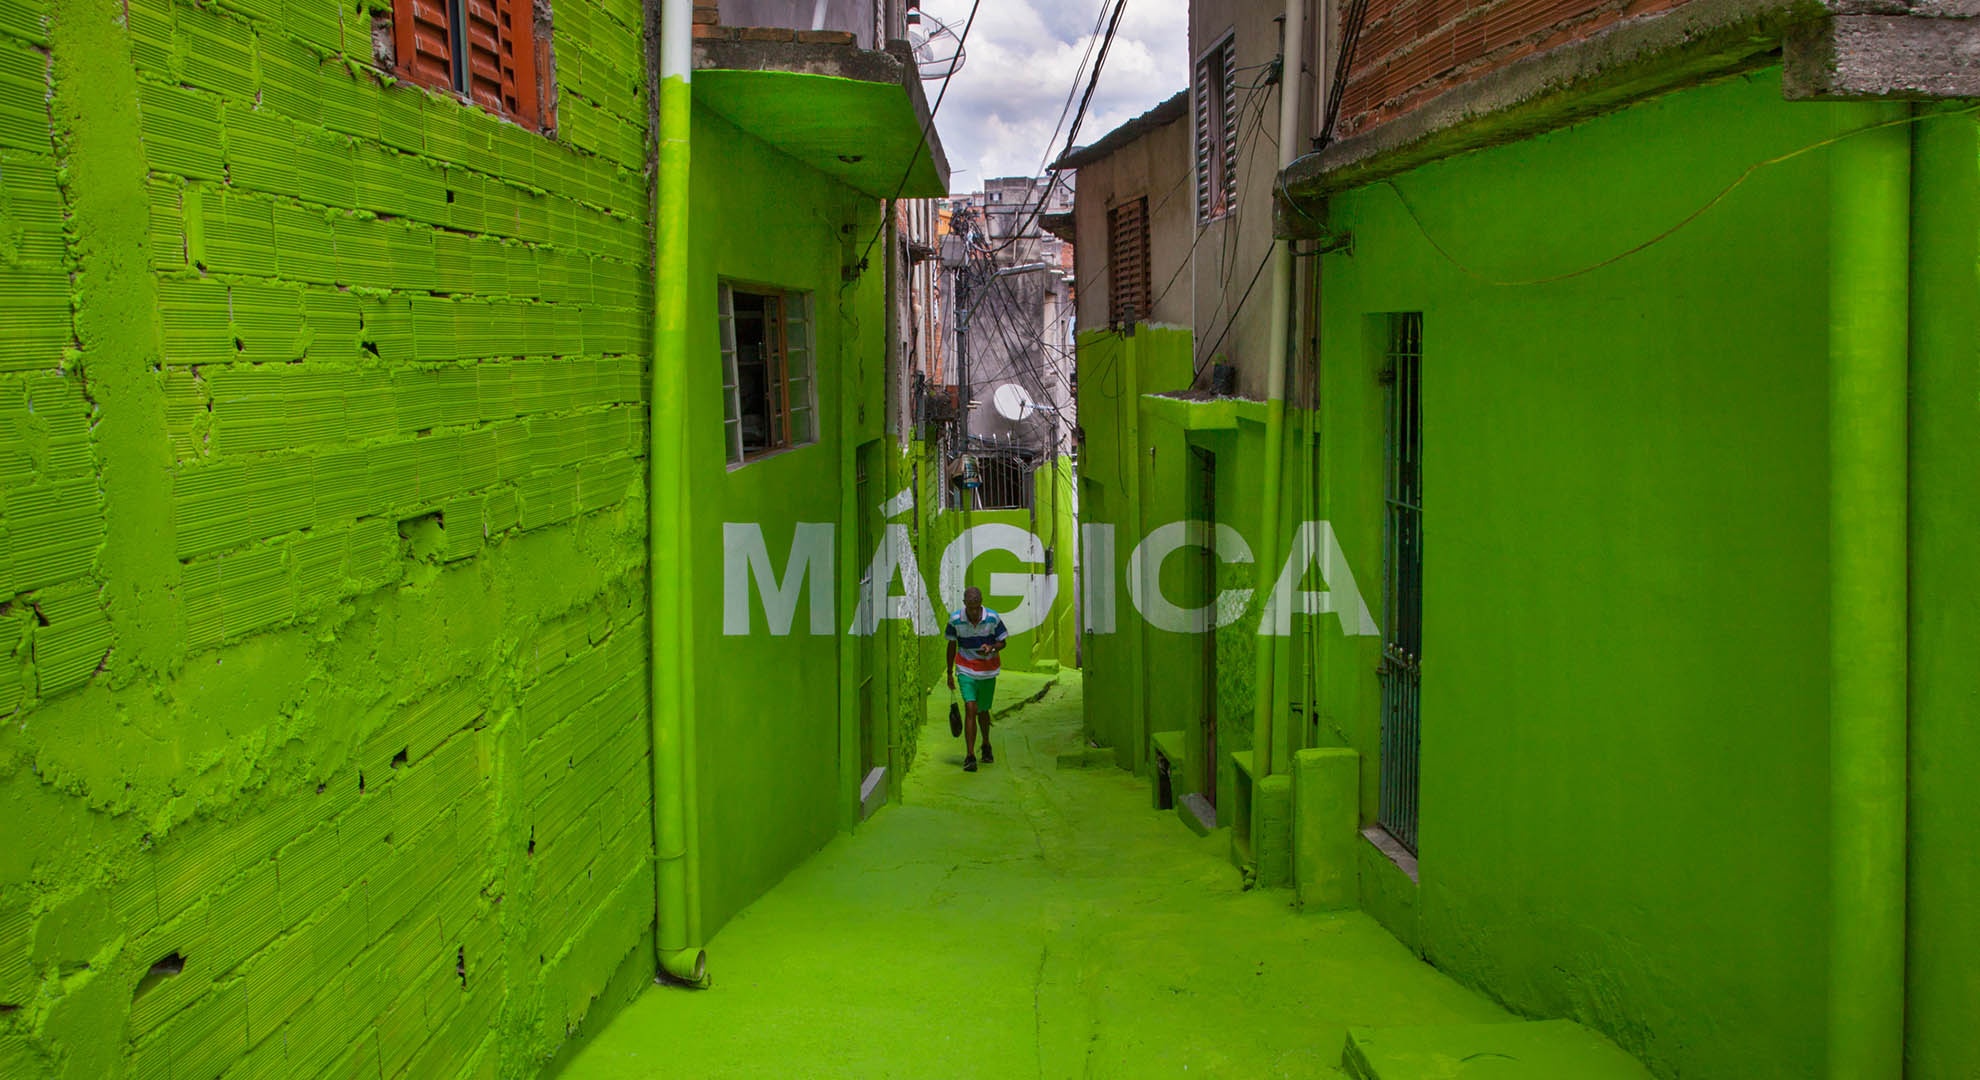 A transformation of public space in Brazil.